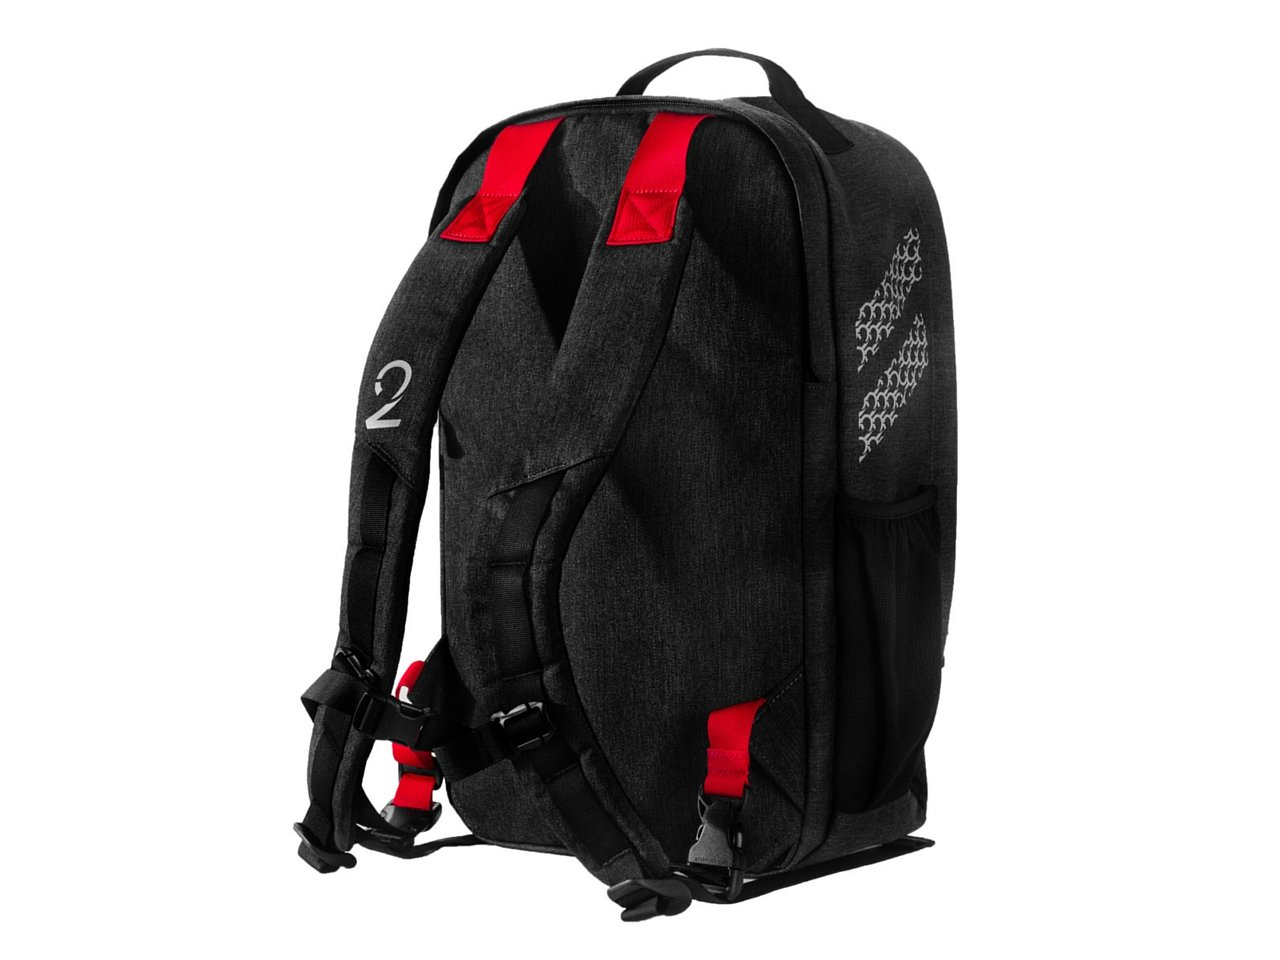 Two Wheel Gear Pannier Backpack Convertible 2 in 1 Commuting and Travel Bike Bag